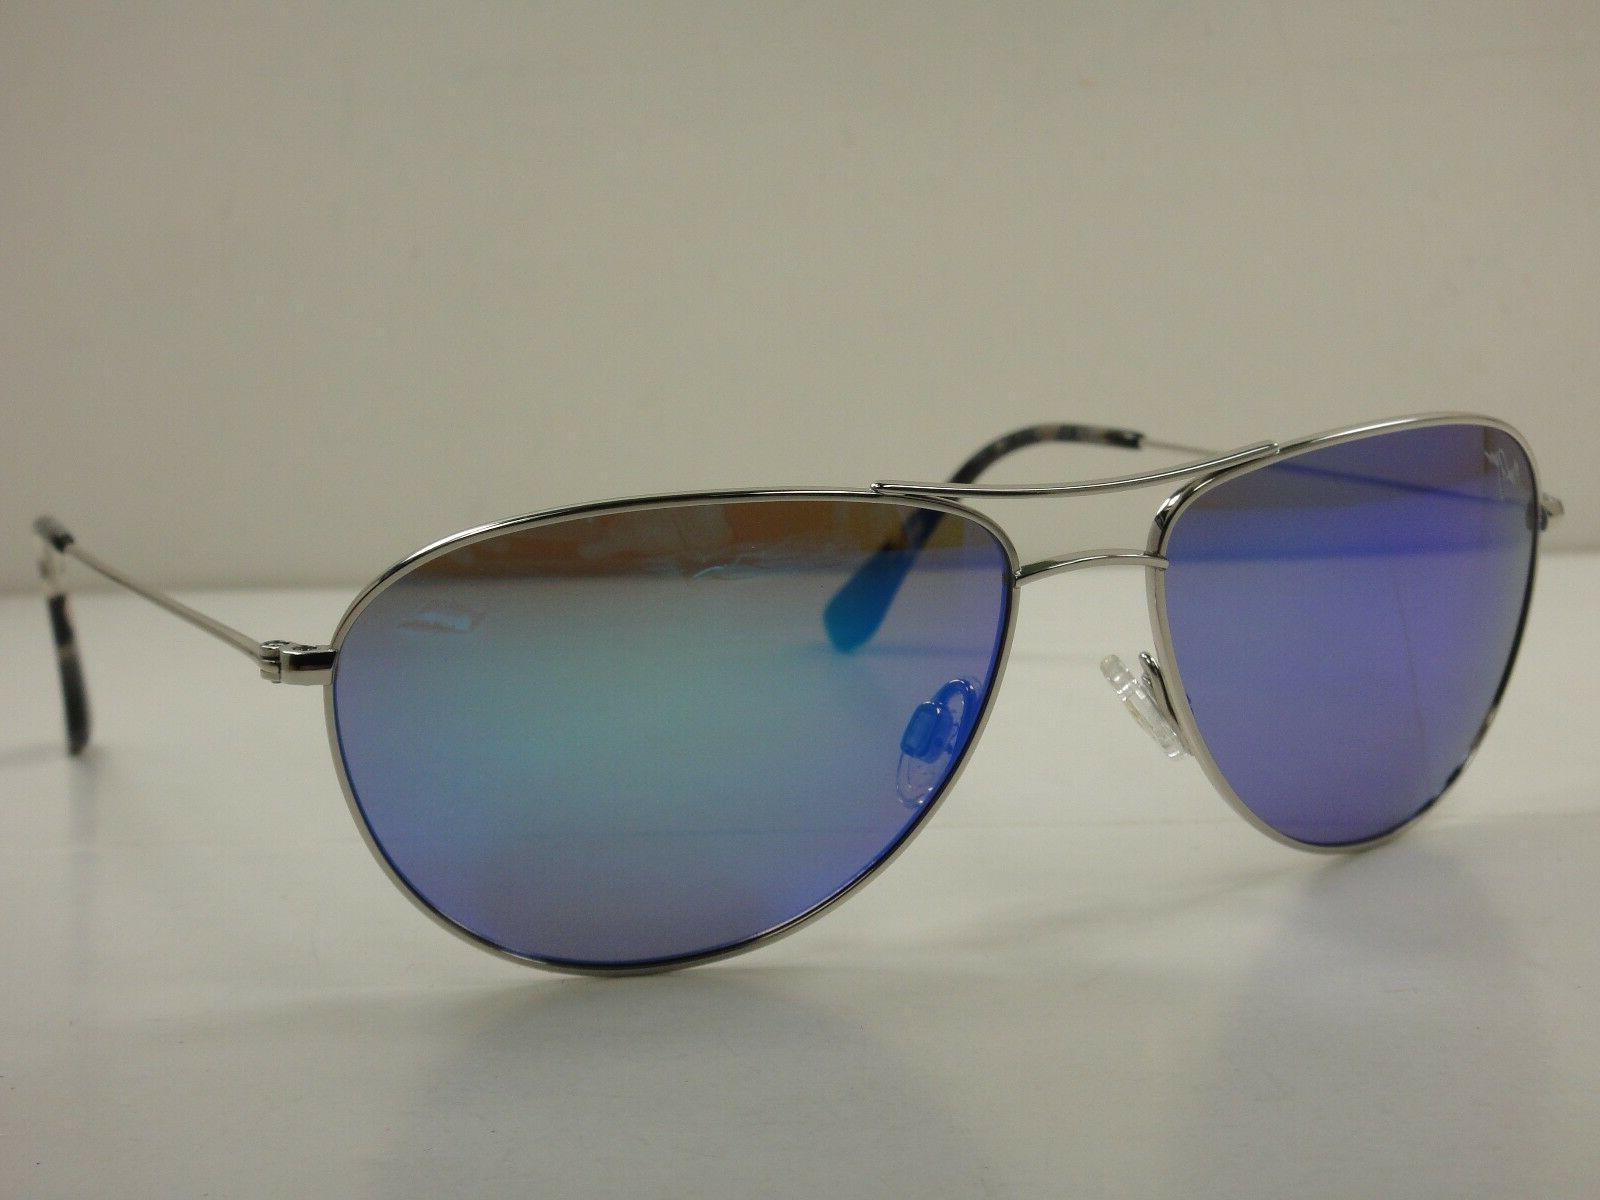 MAUI POLARIZED SUNGLASSES HAWAII PURE LENS NEW